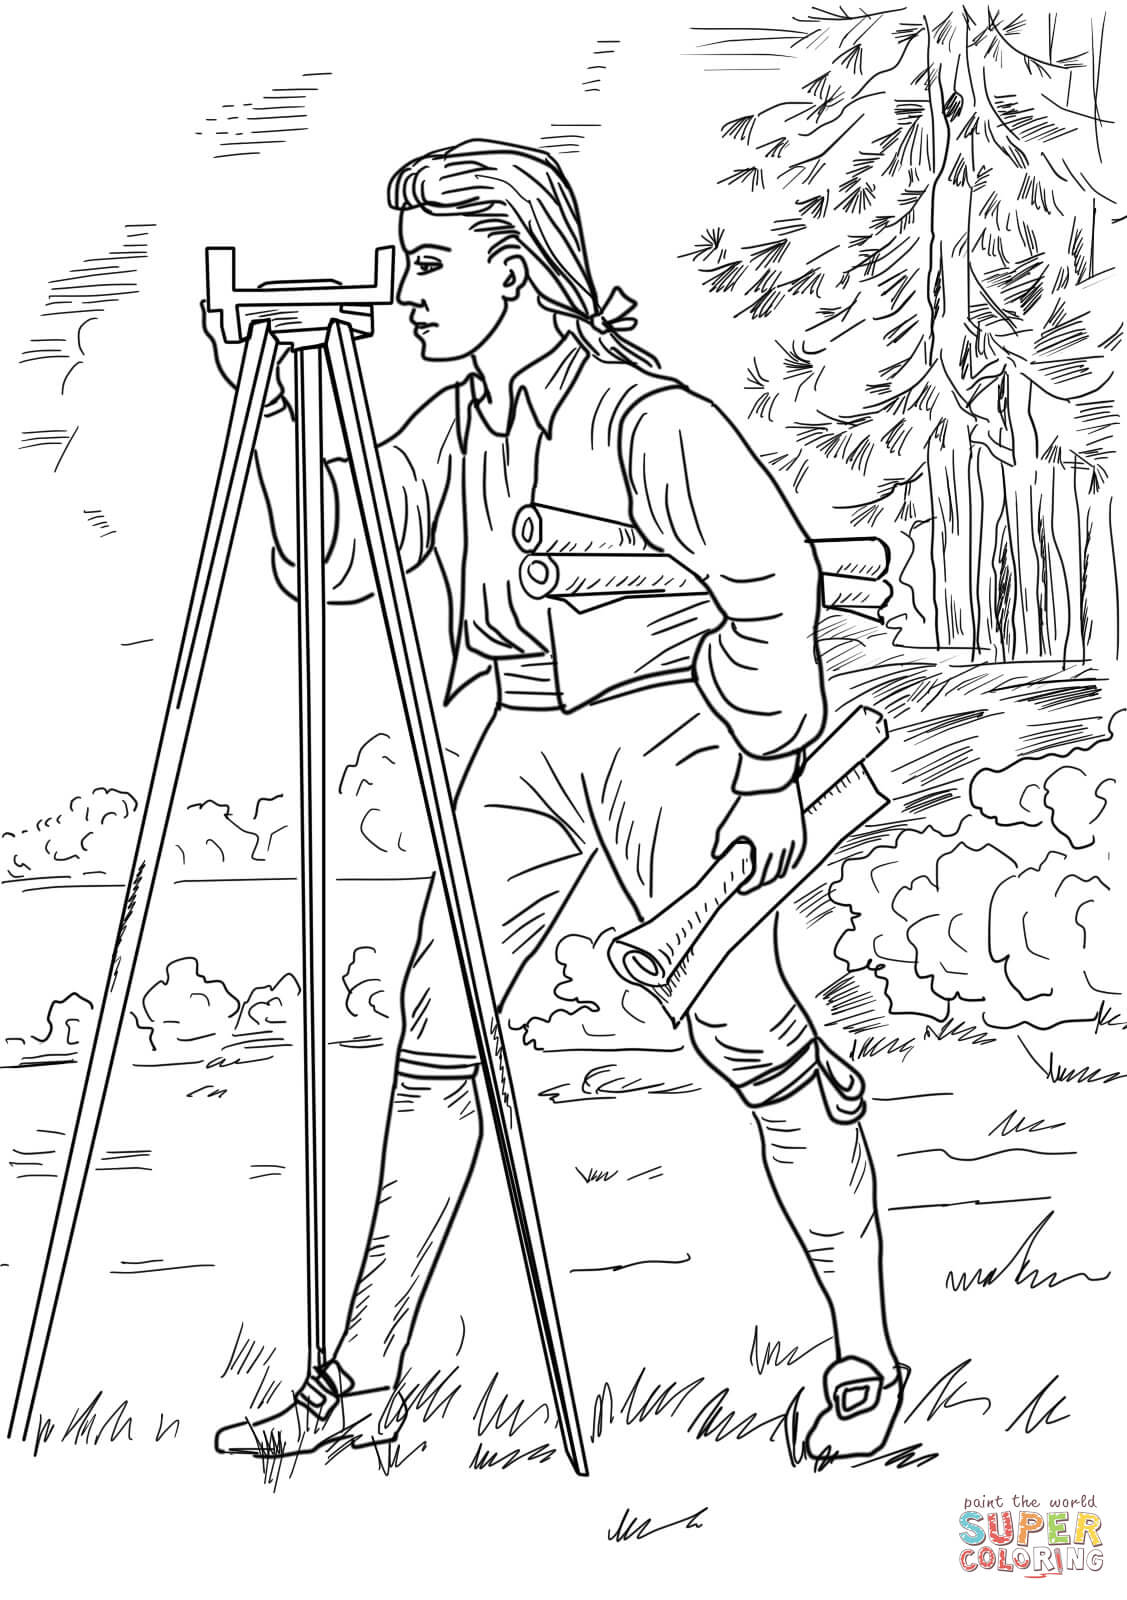 Young George Washington Surveyor And Mapmaker Coloring